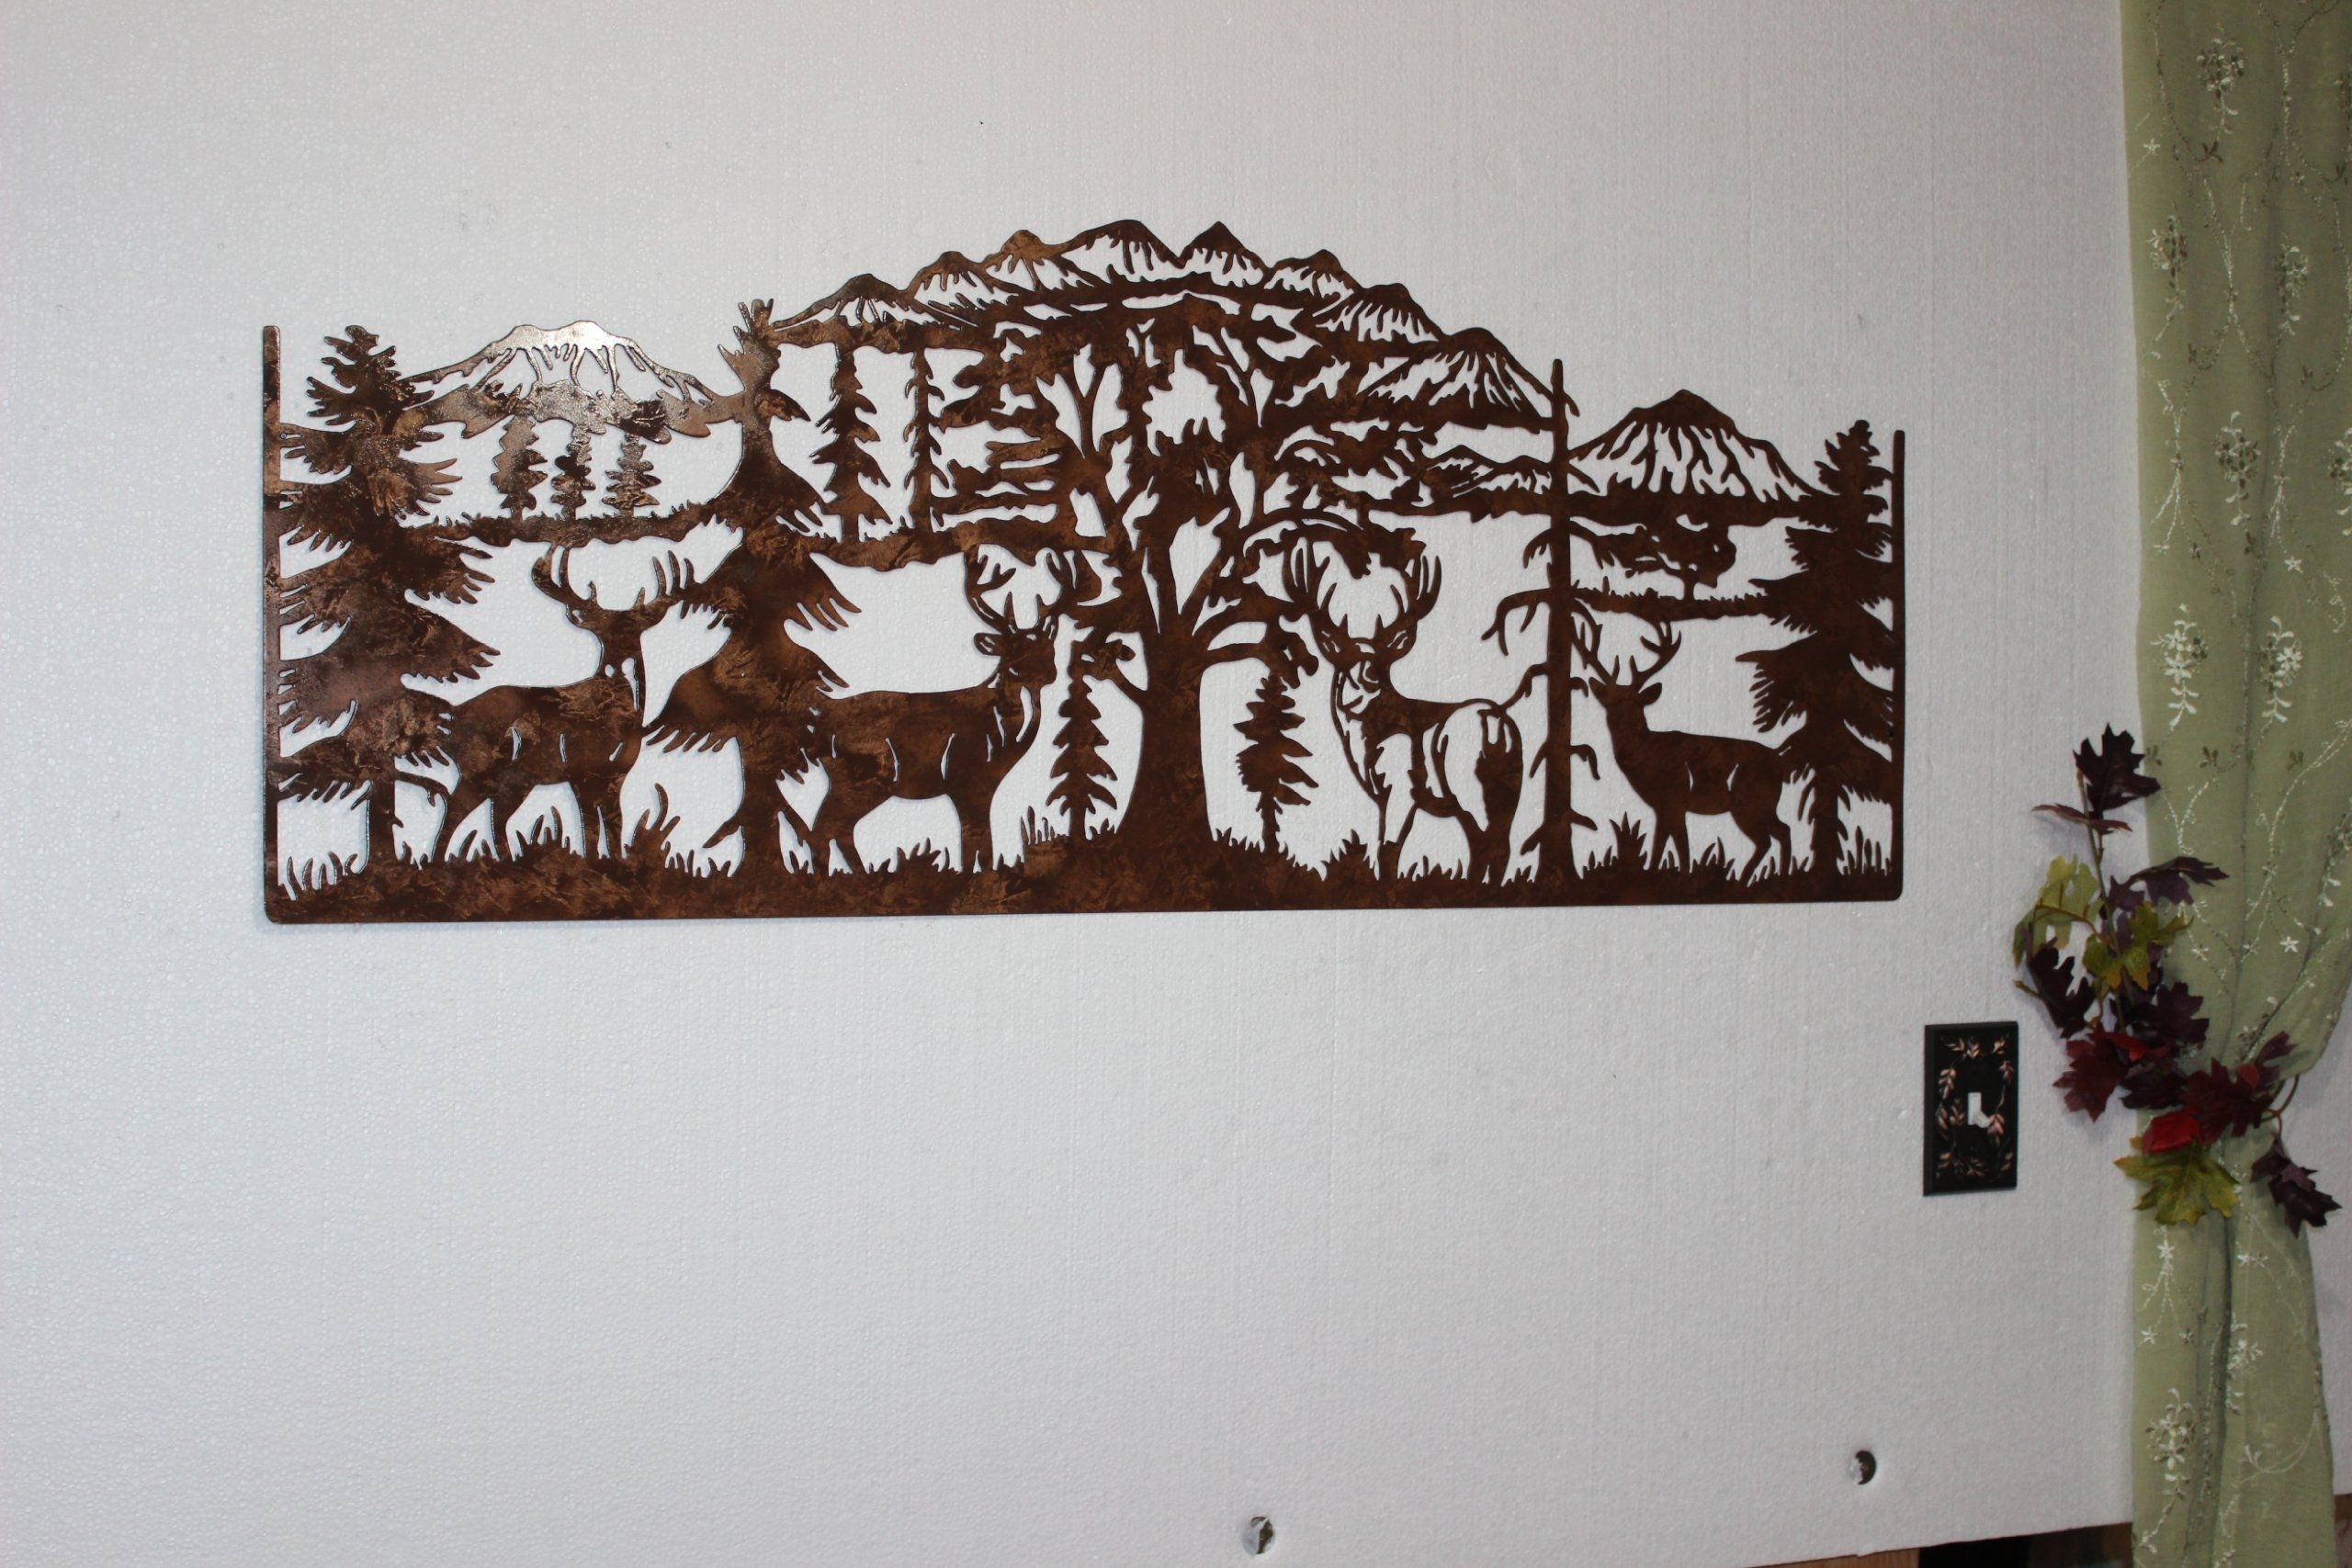 Deer And Mountain Scene With 4 Majestic Bucks Large Metal Wall Art intended for Large Metal Wall Art (Image 4 of 20)